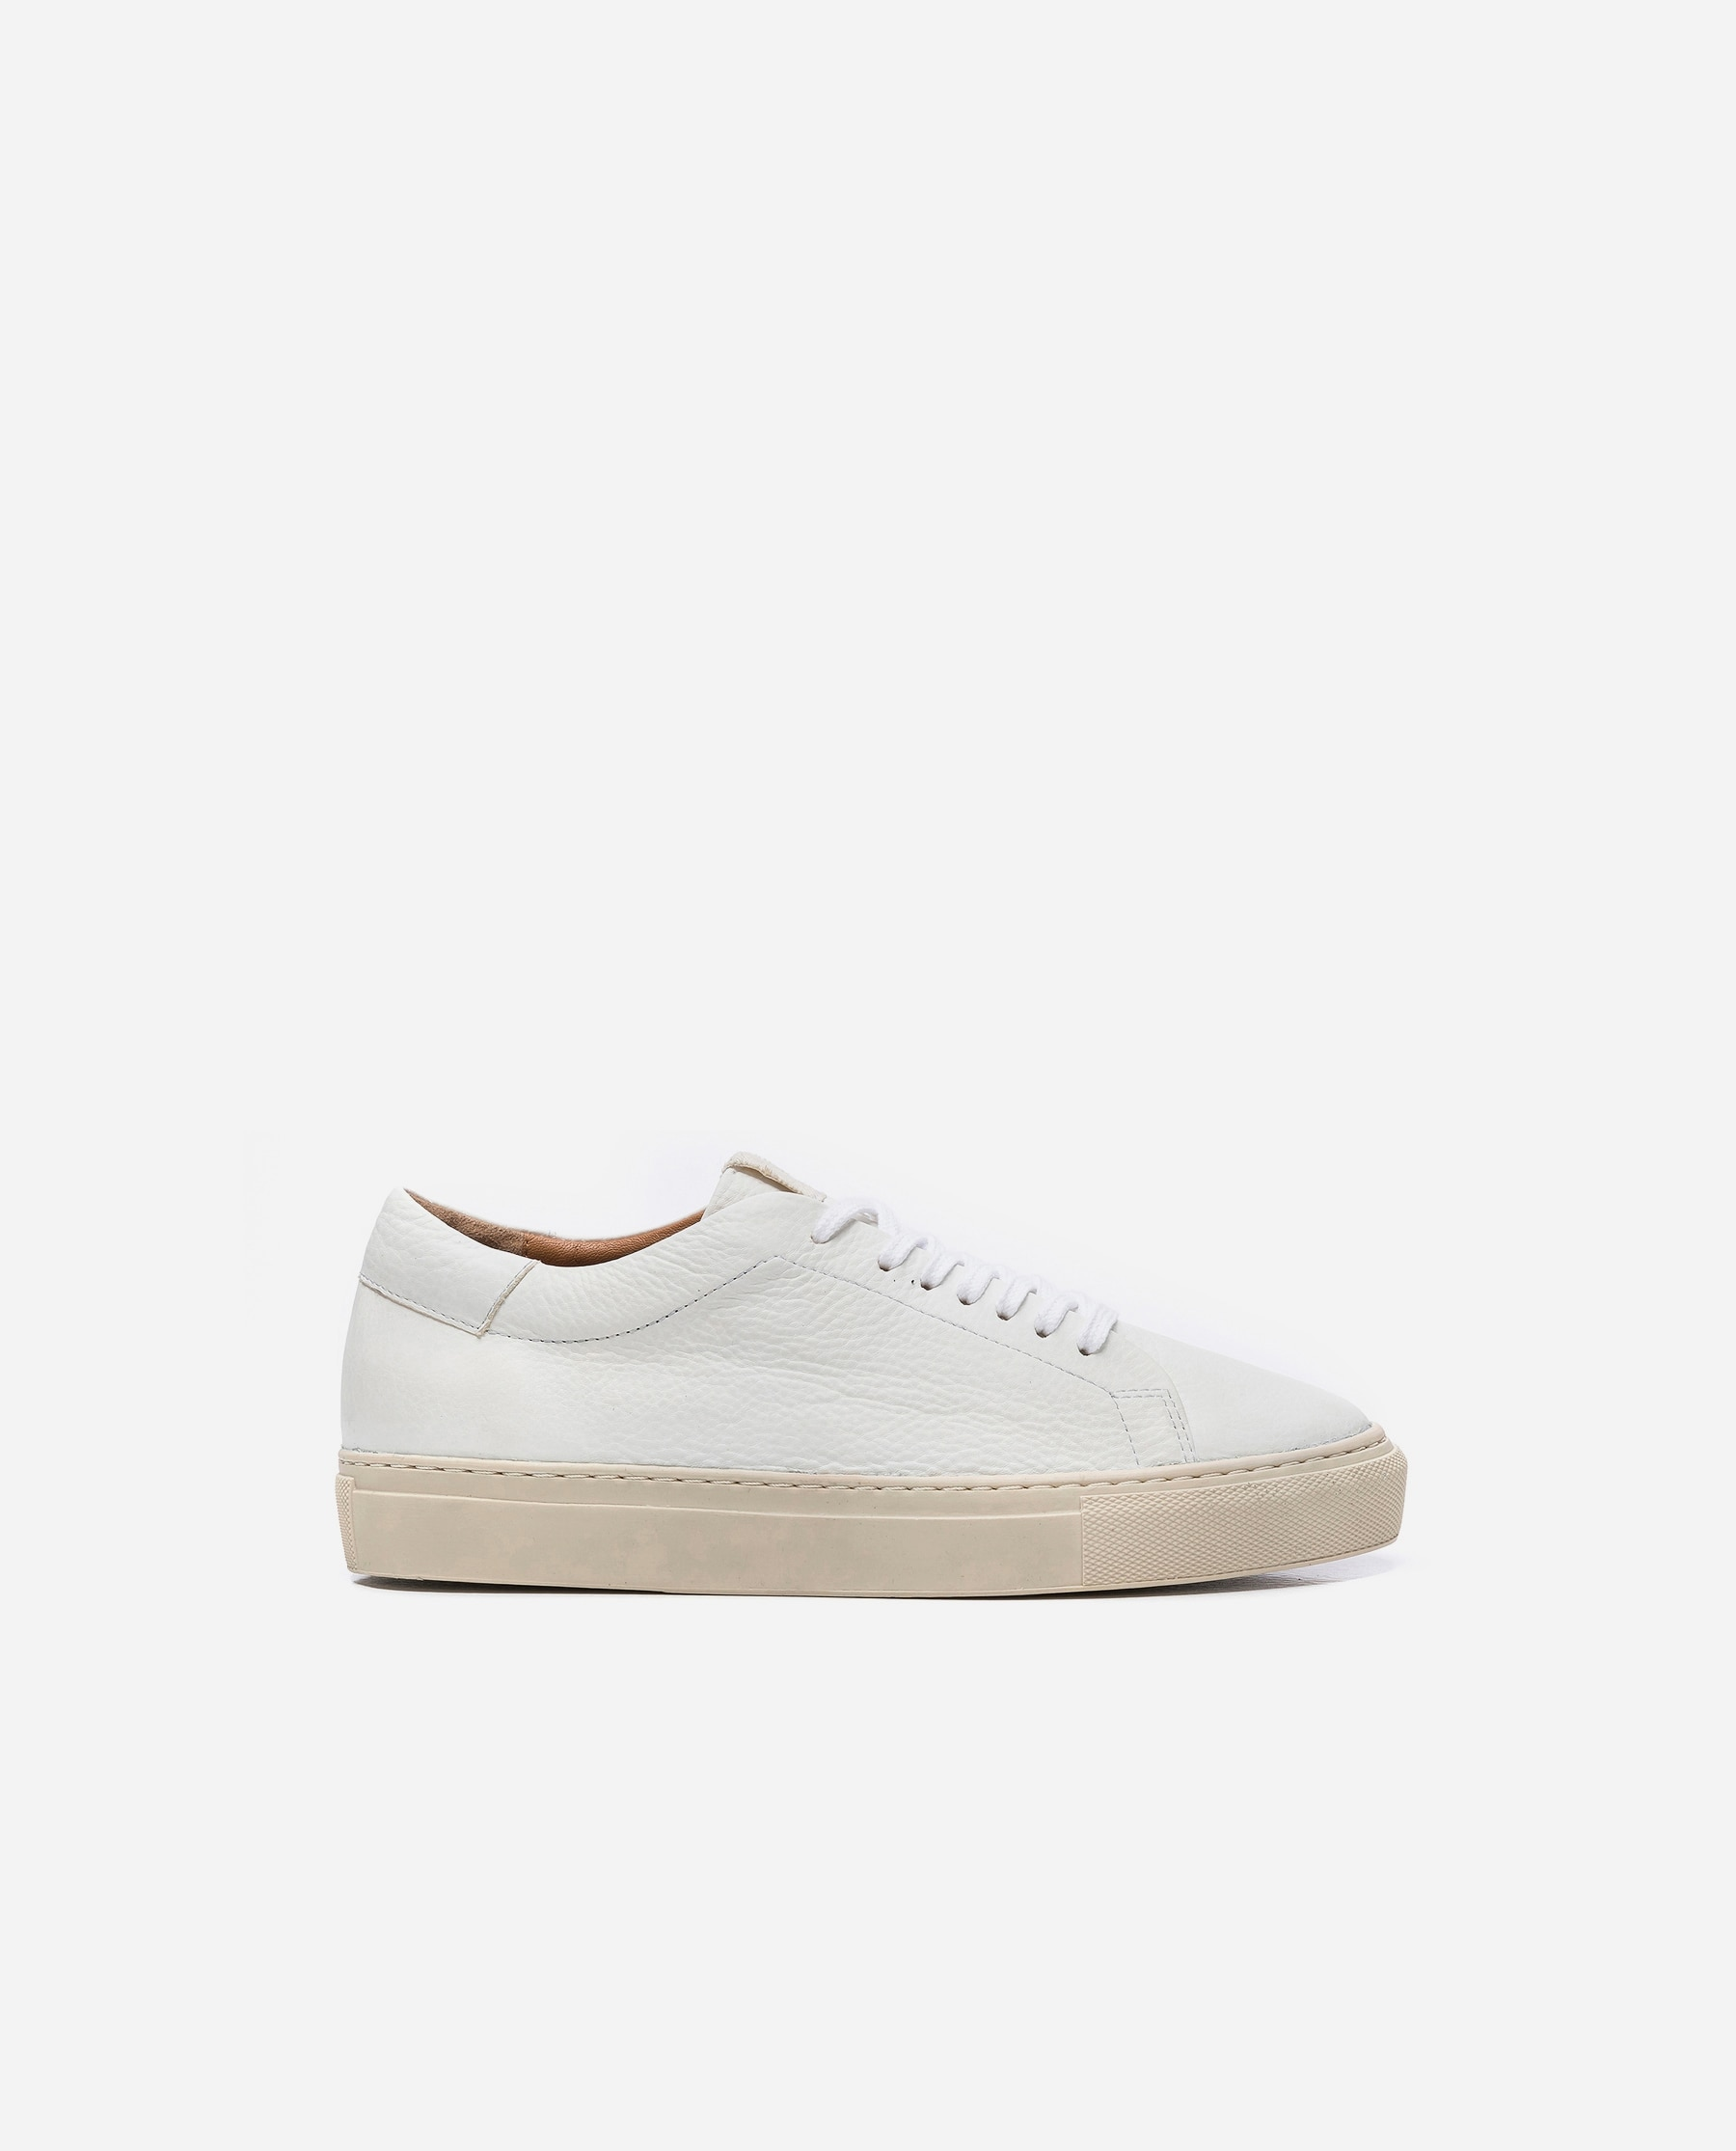 Stockholm Leather White